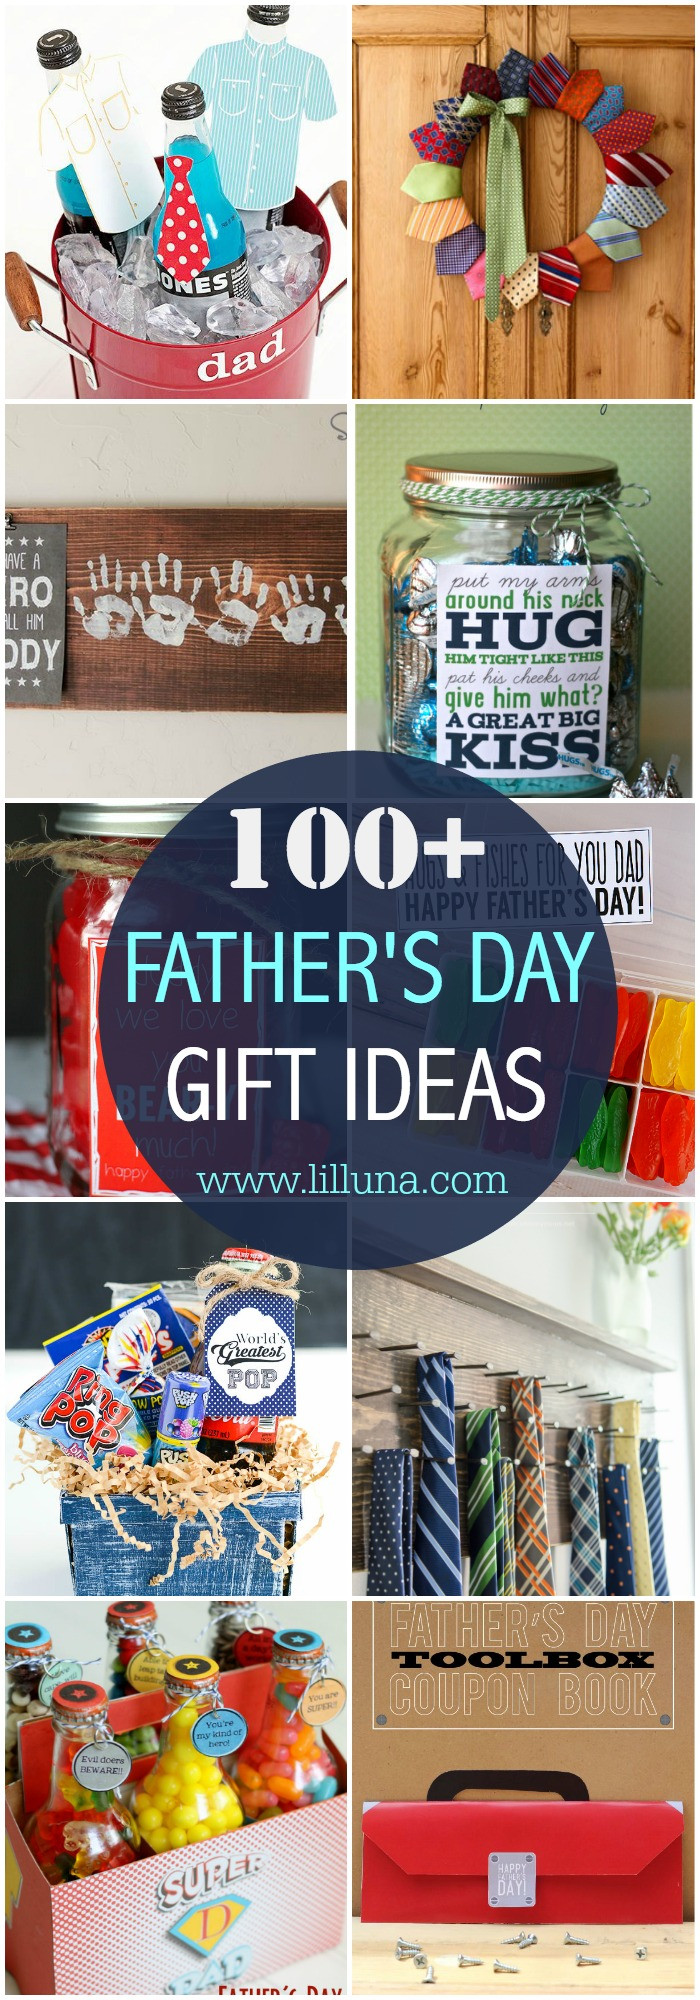 Best ideas about Fathers Day Gift DIY . Save or Pin 100 DIY Father s Day Gifts Now.